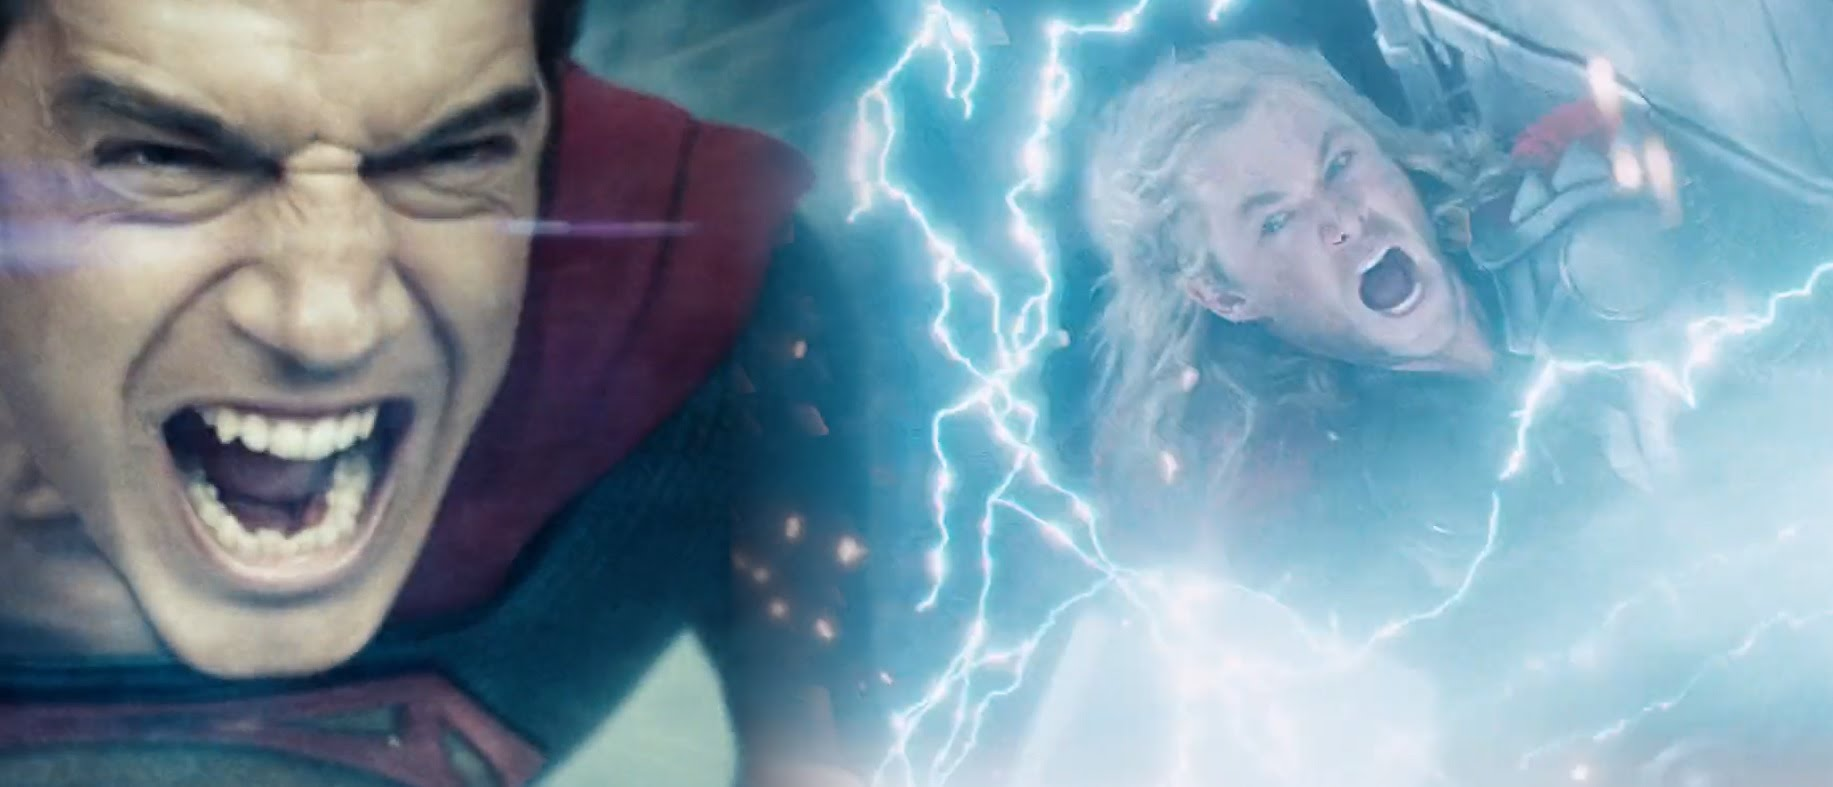 Live-Action Marvel and DC Comics Superheroes Face Off Against Each Other in an Epic Movie Trailer Mashup